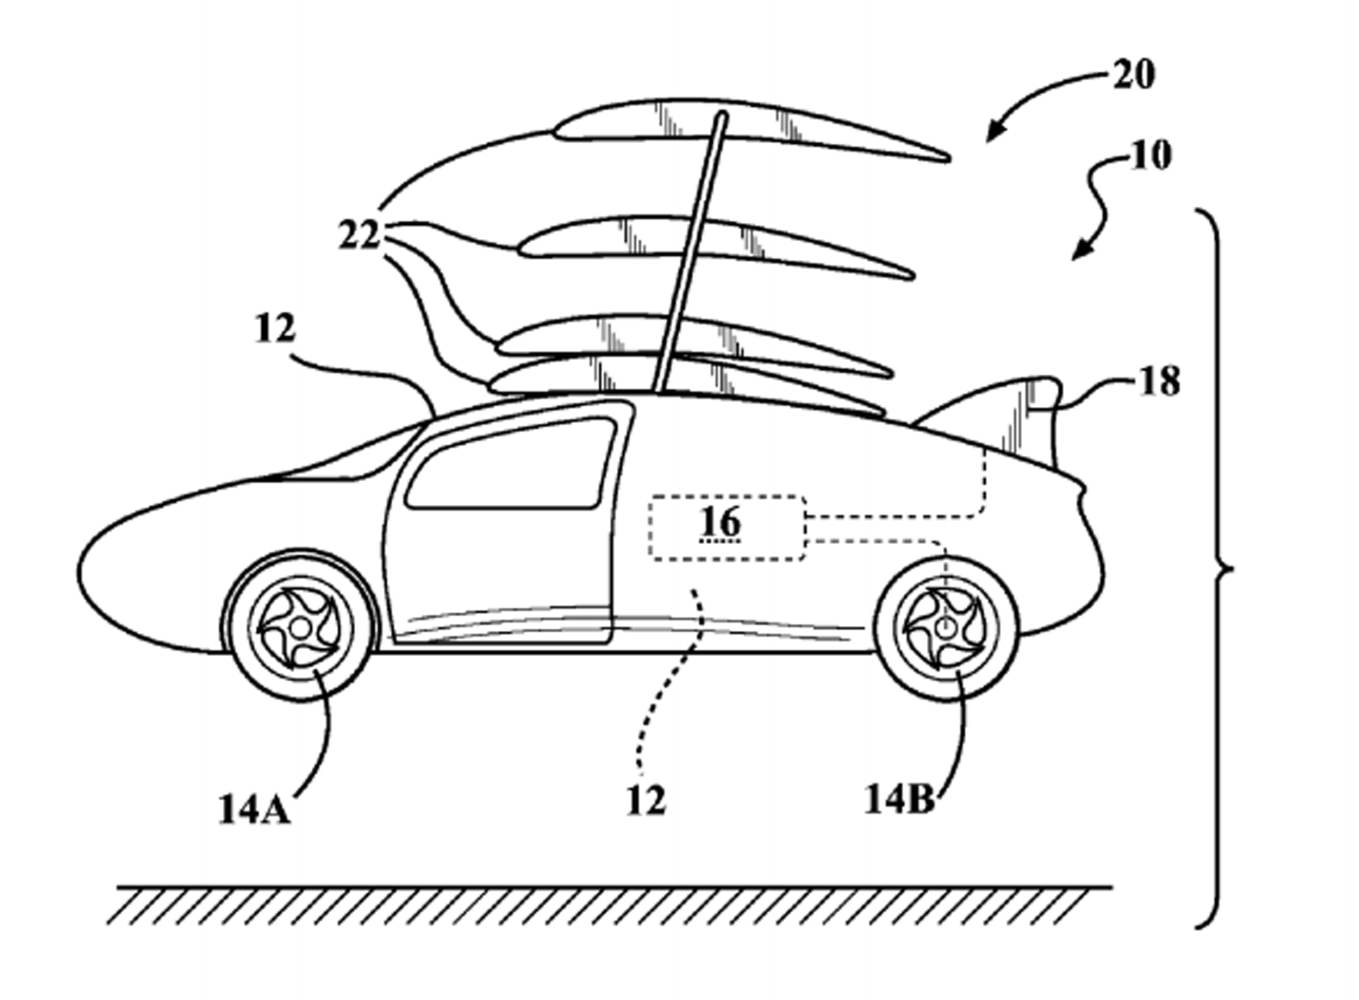 hovercraft schematics with Toyota Trying Build Flying Car If So It Wont Be N426146 on Boat Motor Wiring Diagrams moreover Tugboat Schematic Diagram moreover Diy Hovercraft With Cd additionally Futuristic Spacecraft Designs besides Halo wars 2 open beta image dump.